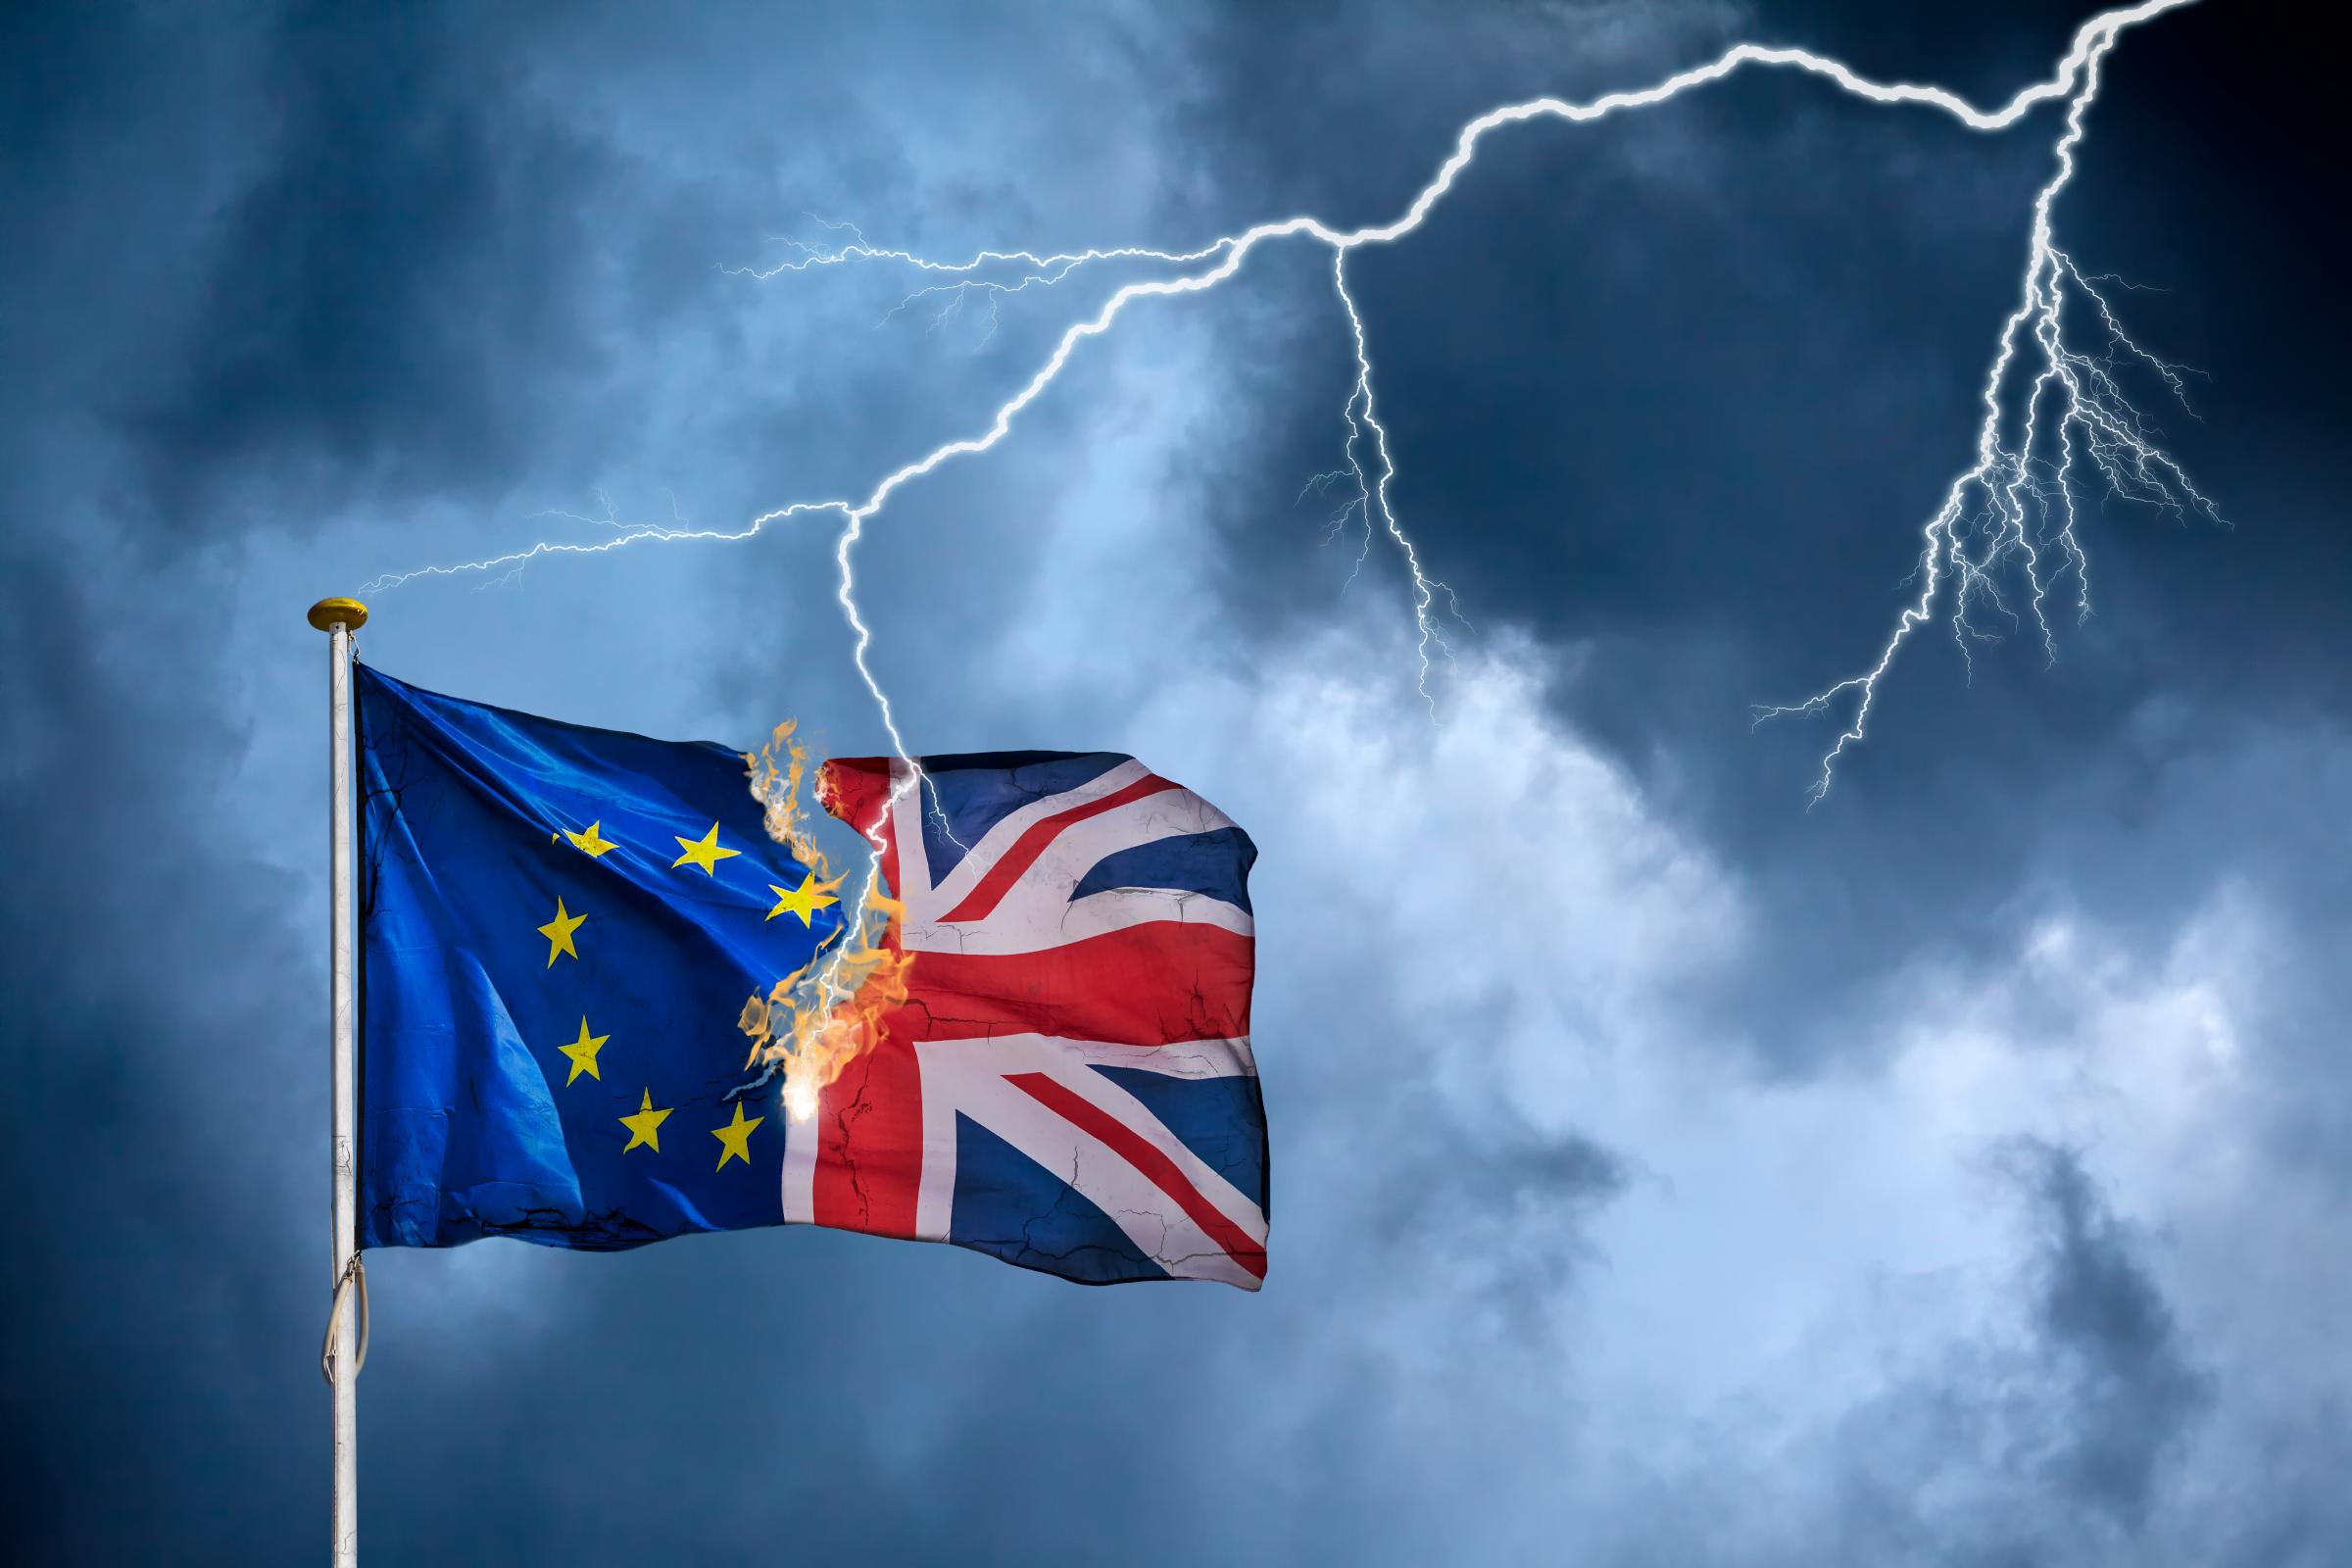 The majority of people in Trafford voted to remain in the EU.